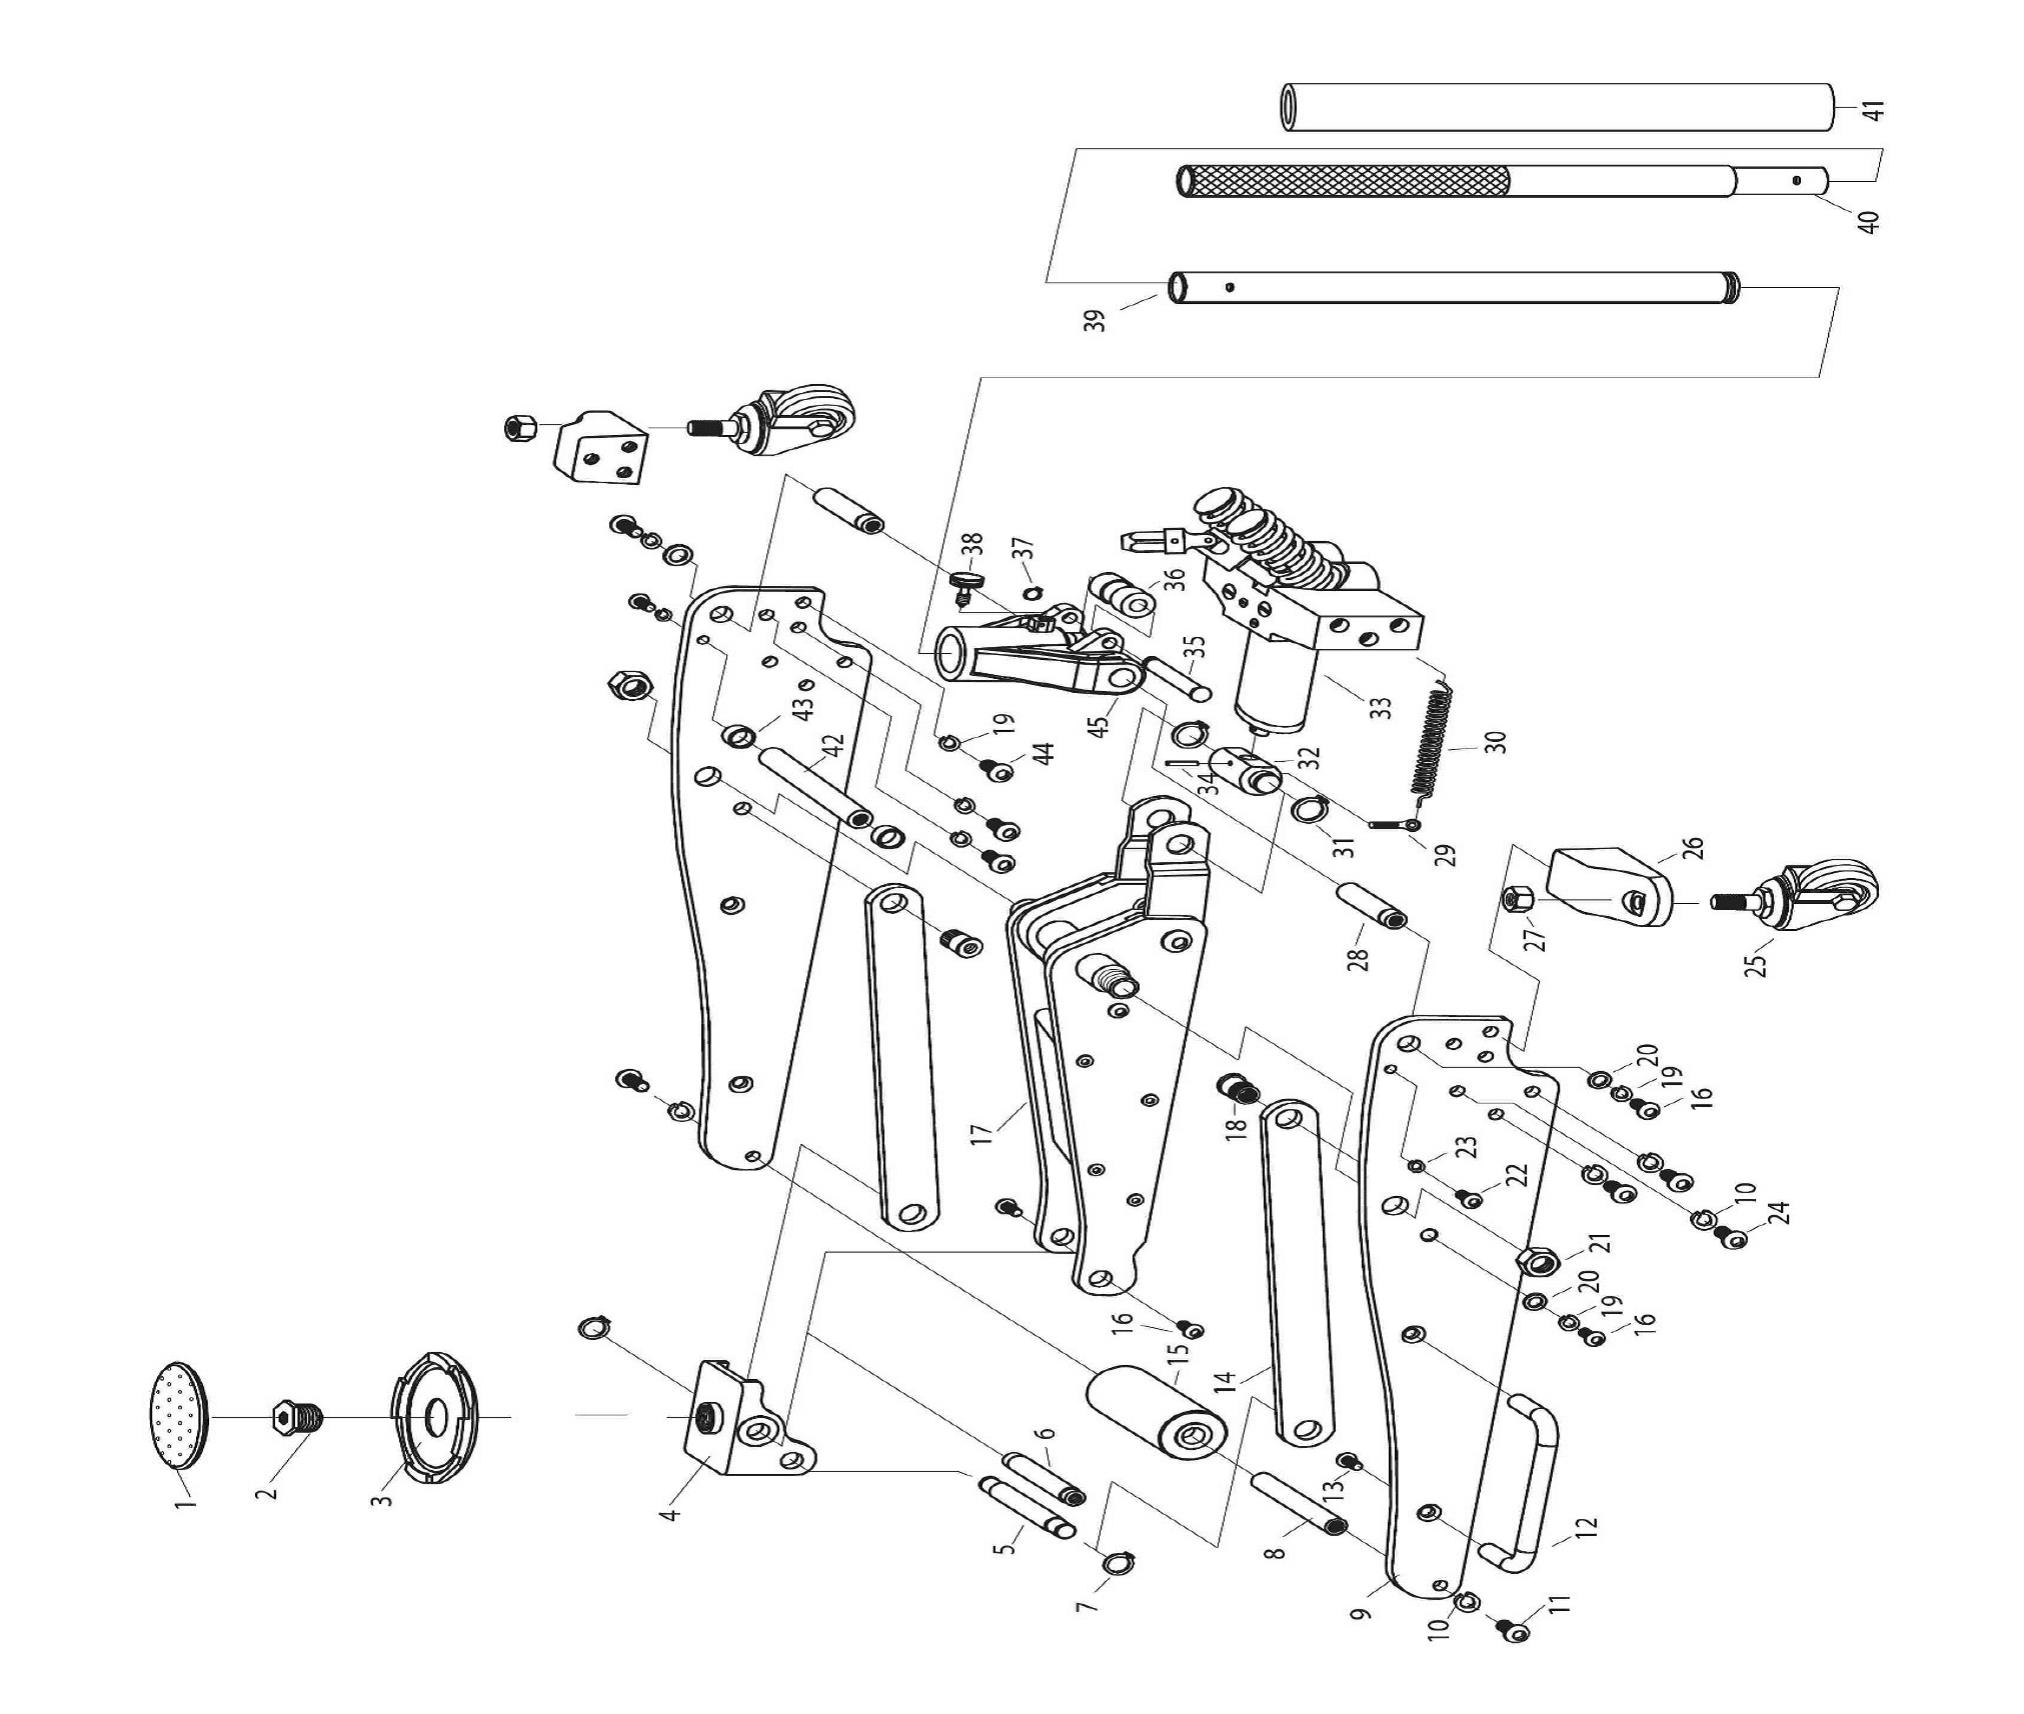 Sip 1 25 Ton Aluminium Racing Jack Diagram